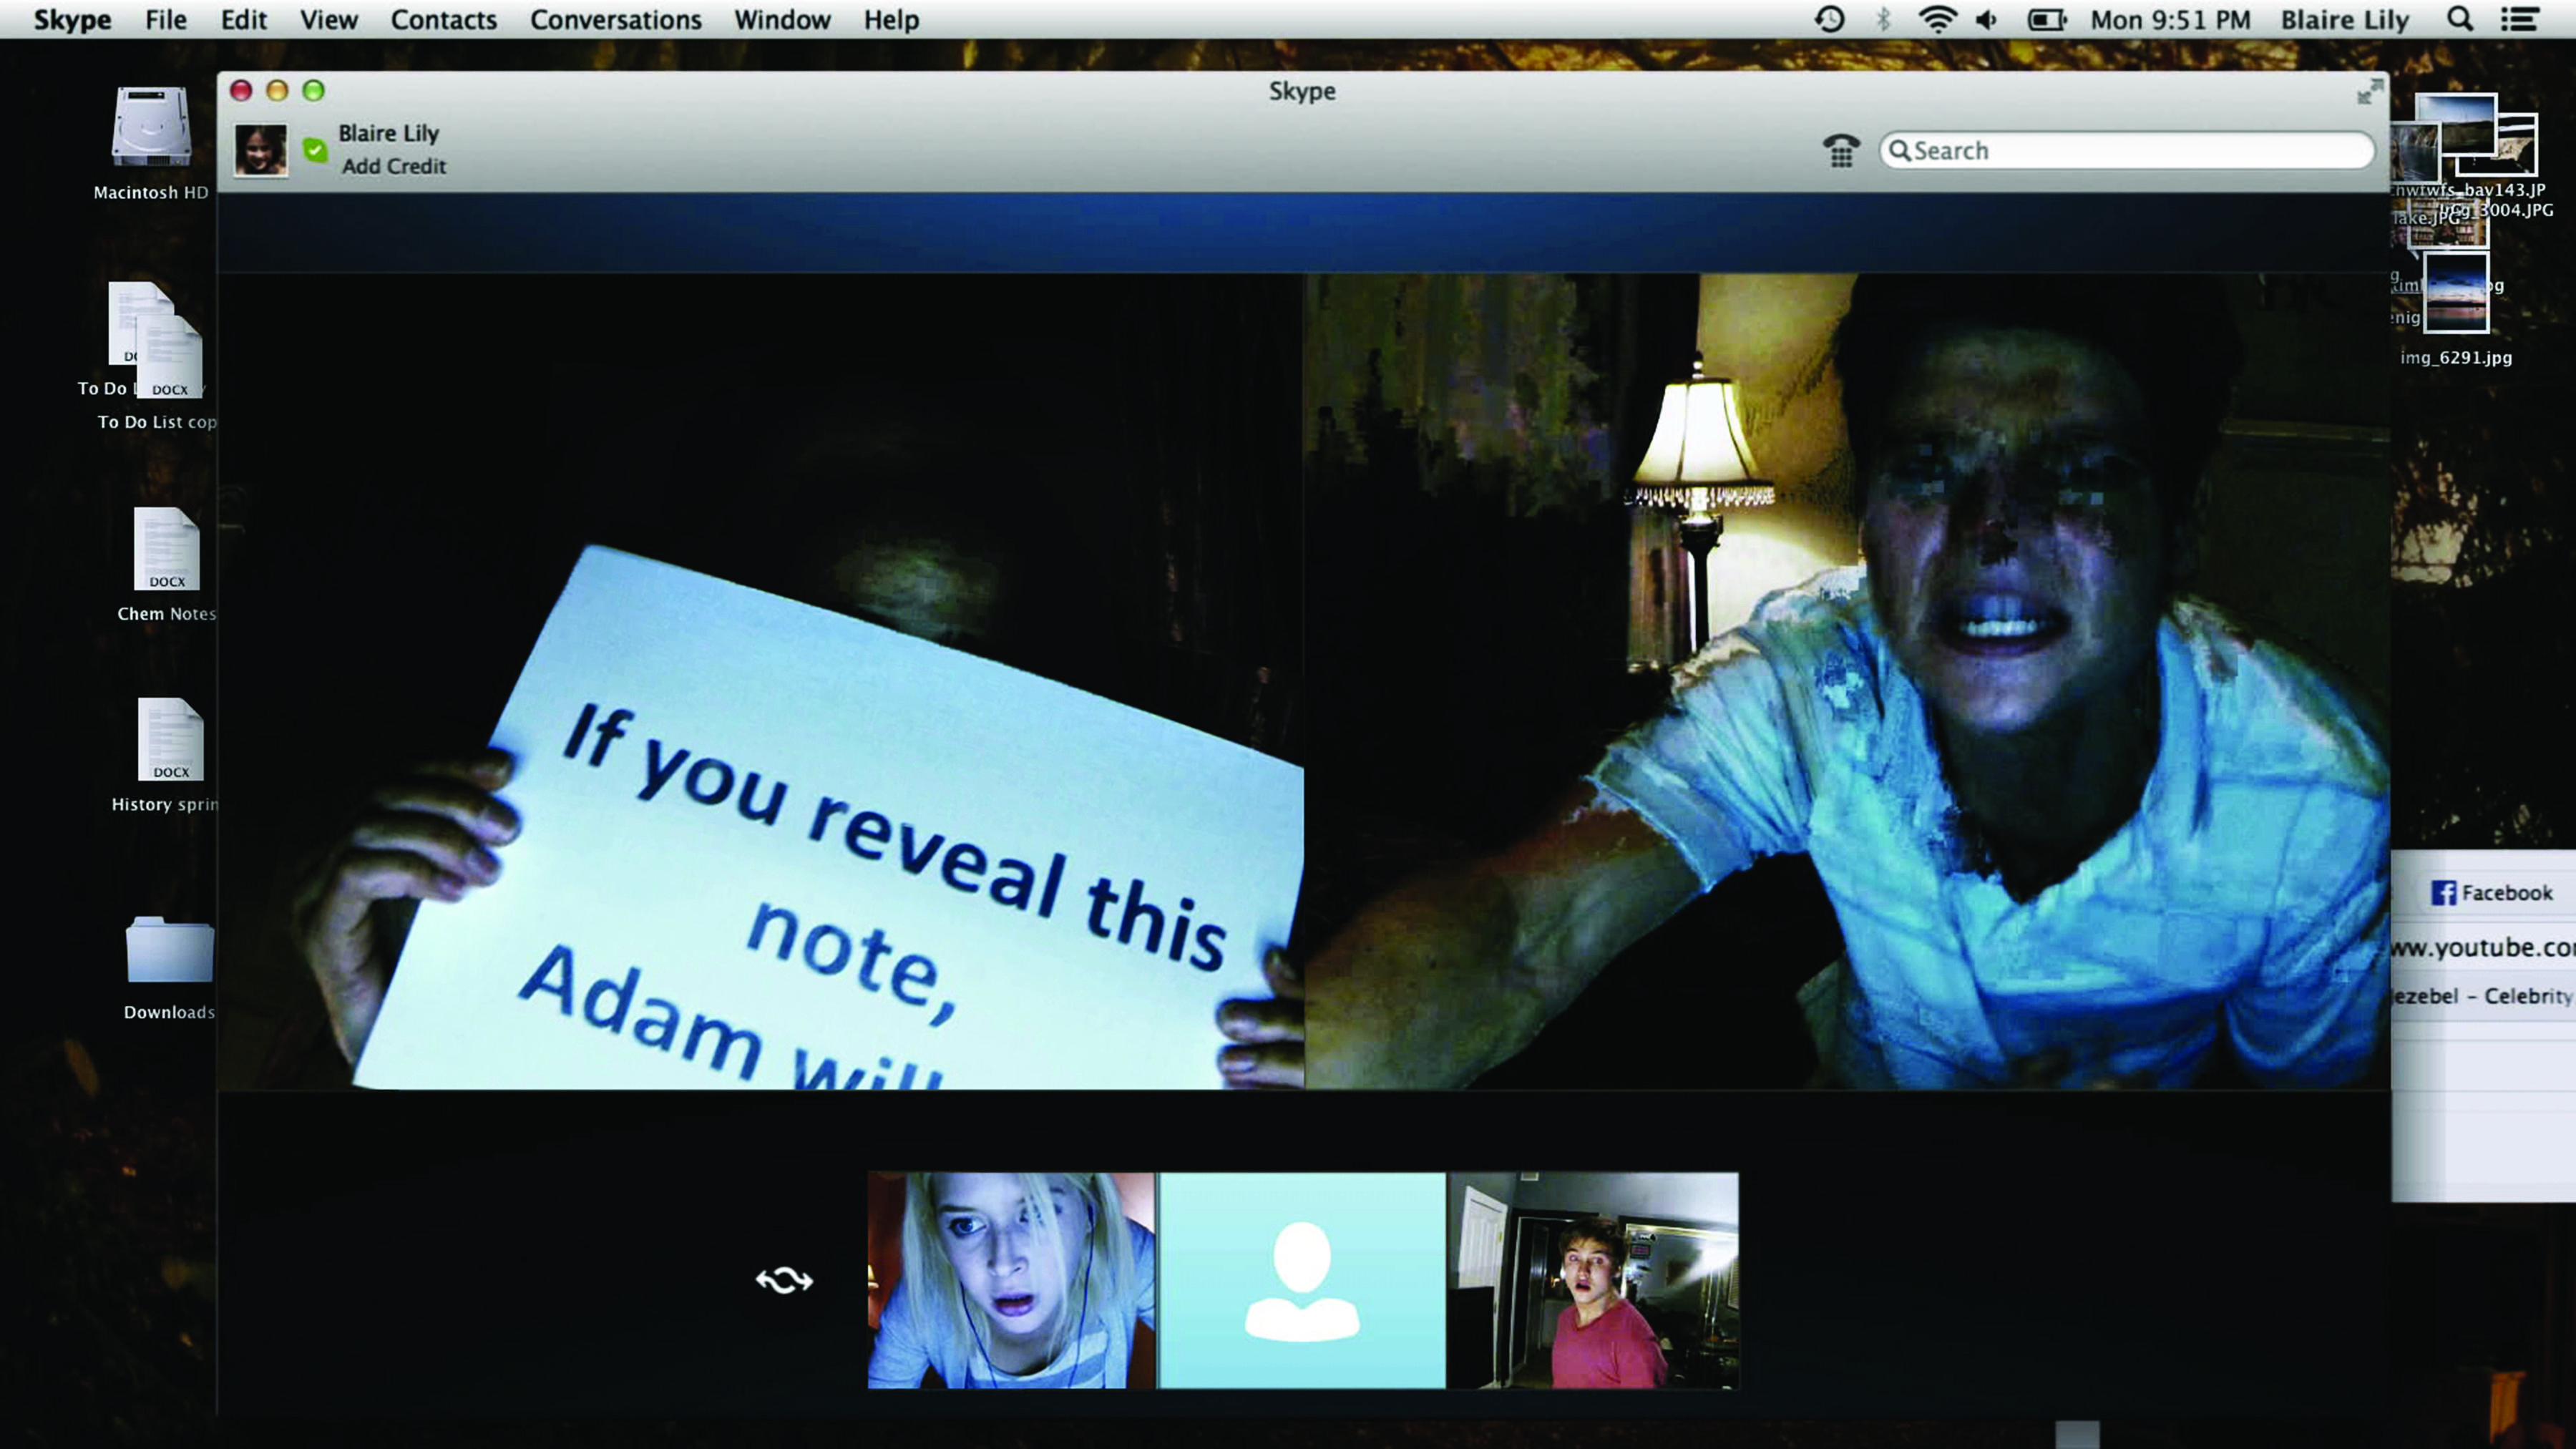 Film Title: Unfriended